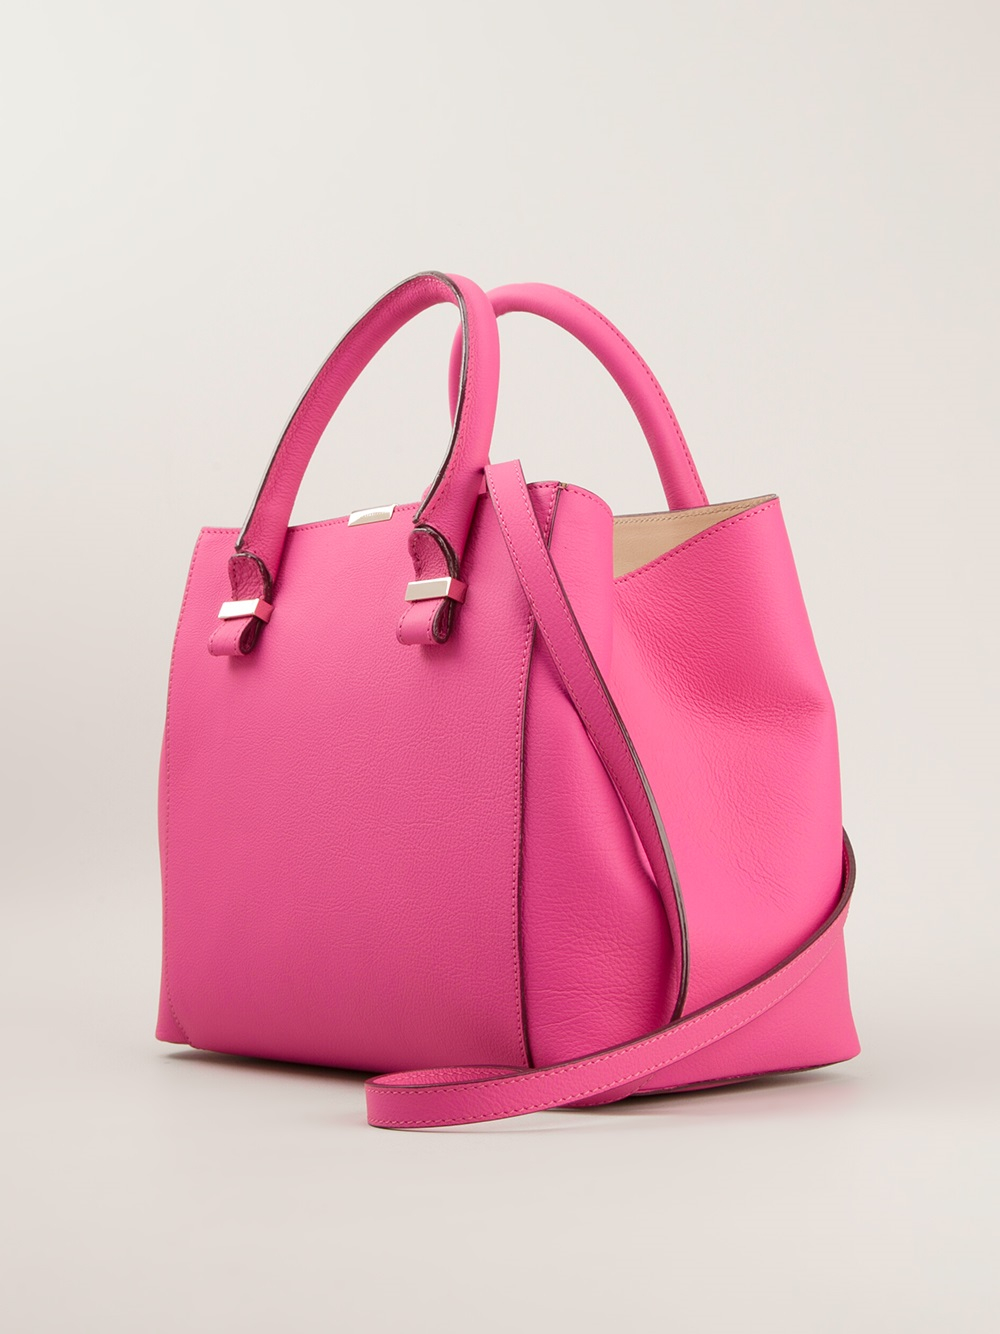 Victoria Beckham Quincy Tote Bag In Pink Amp Purple Pink